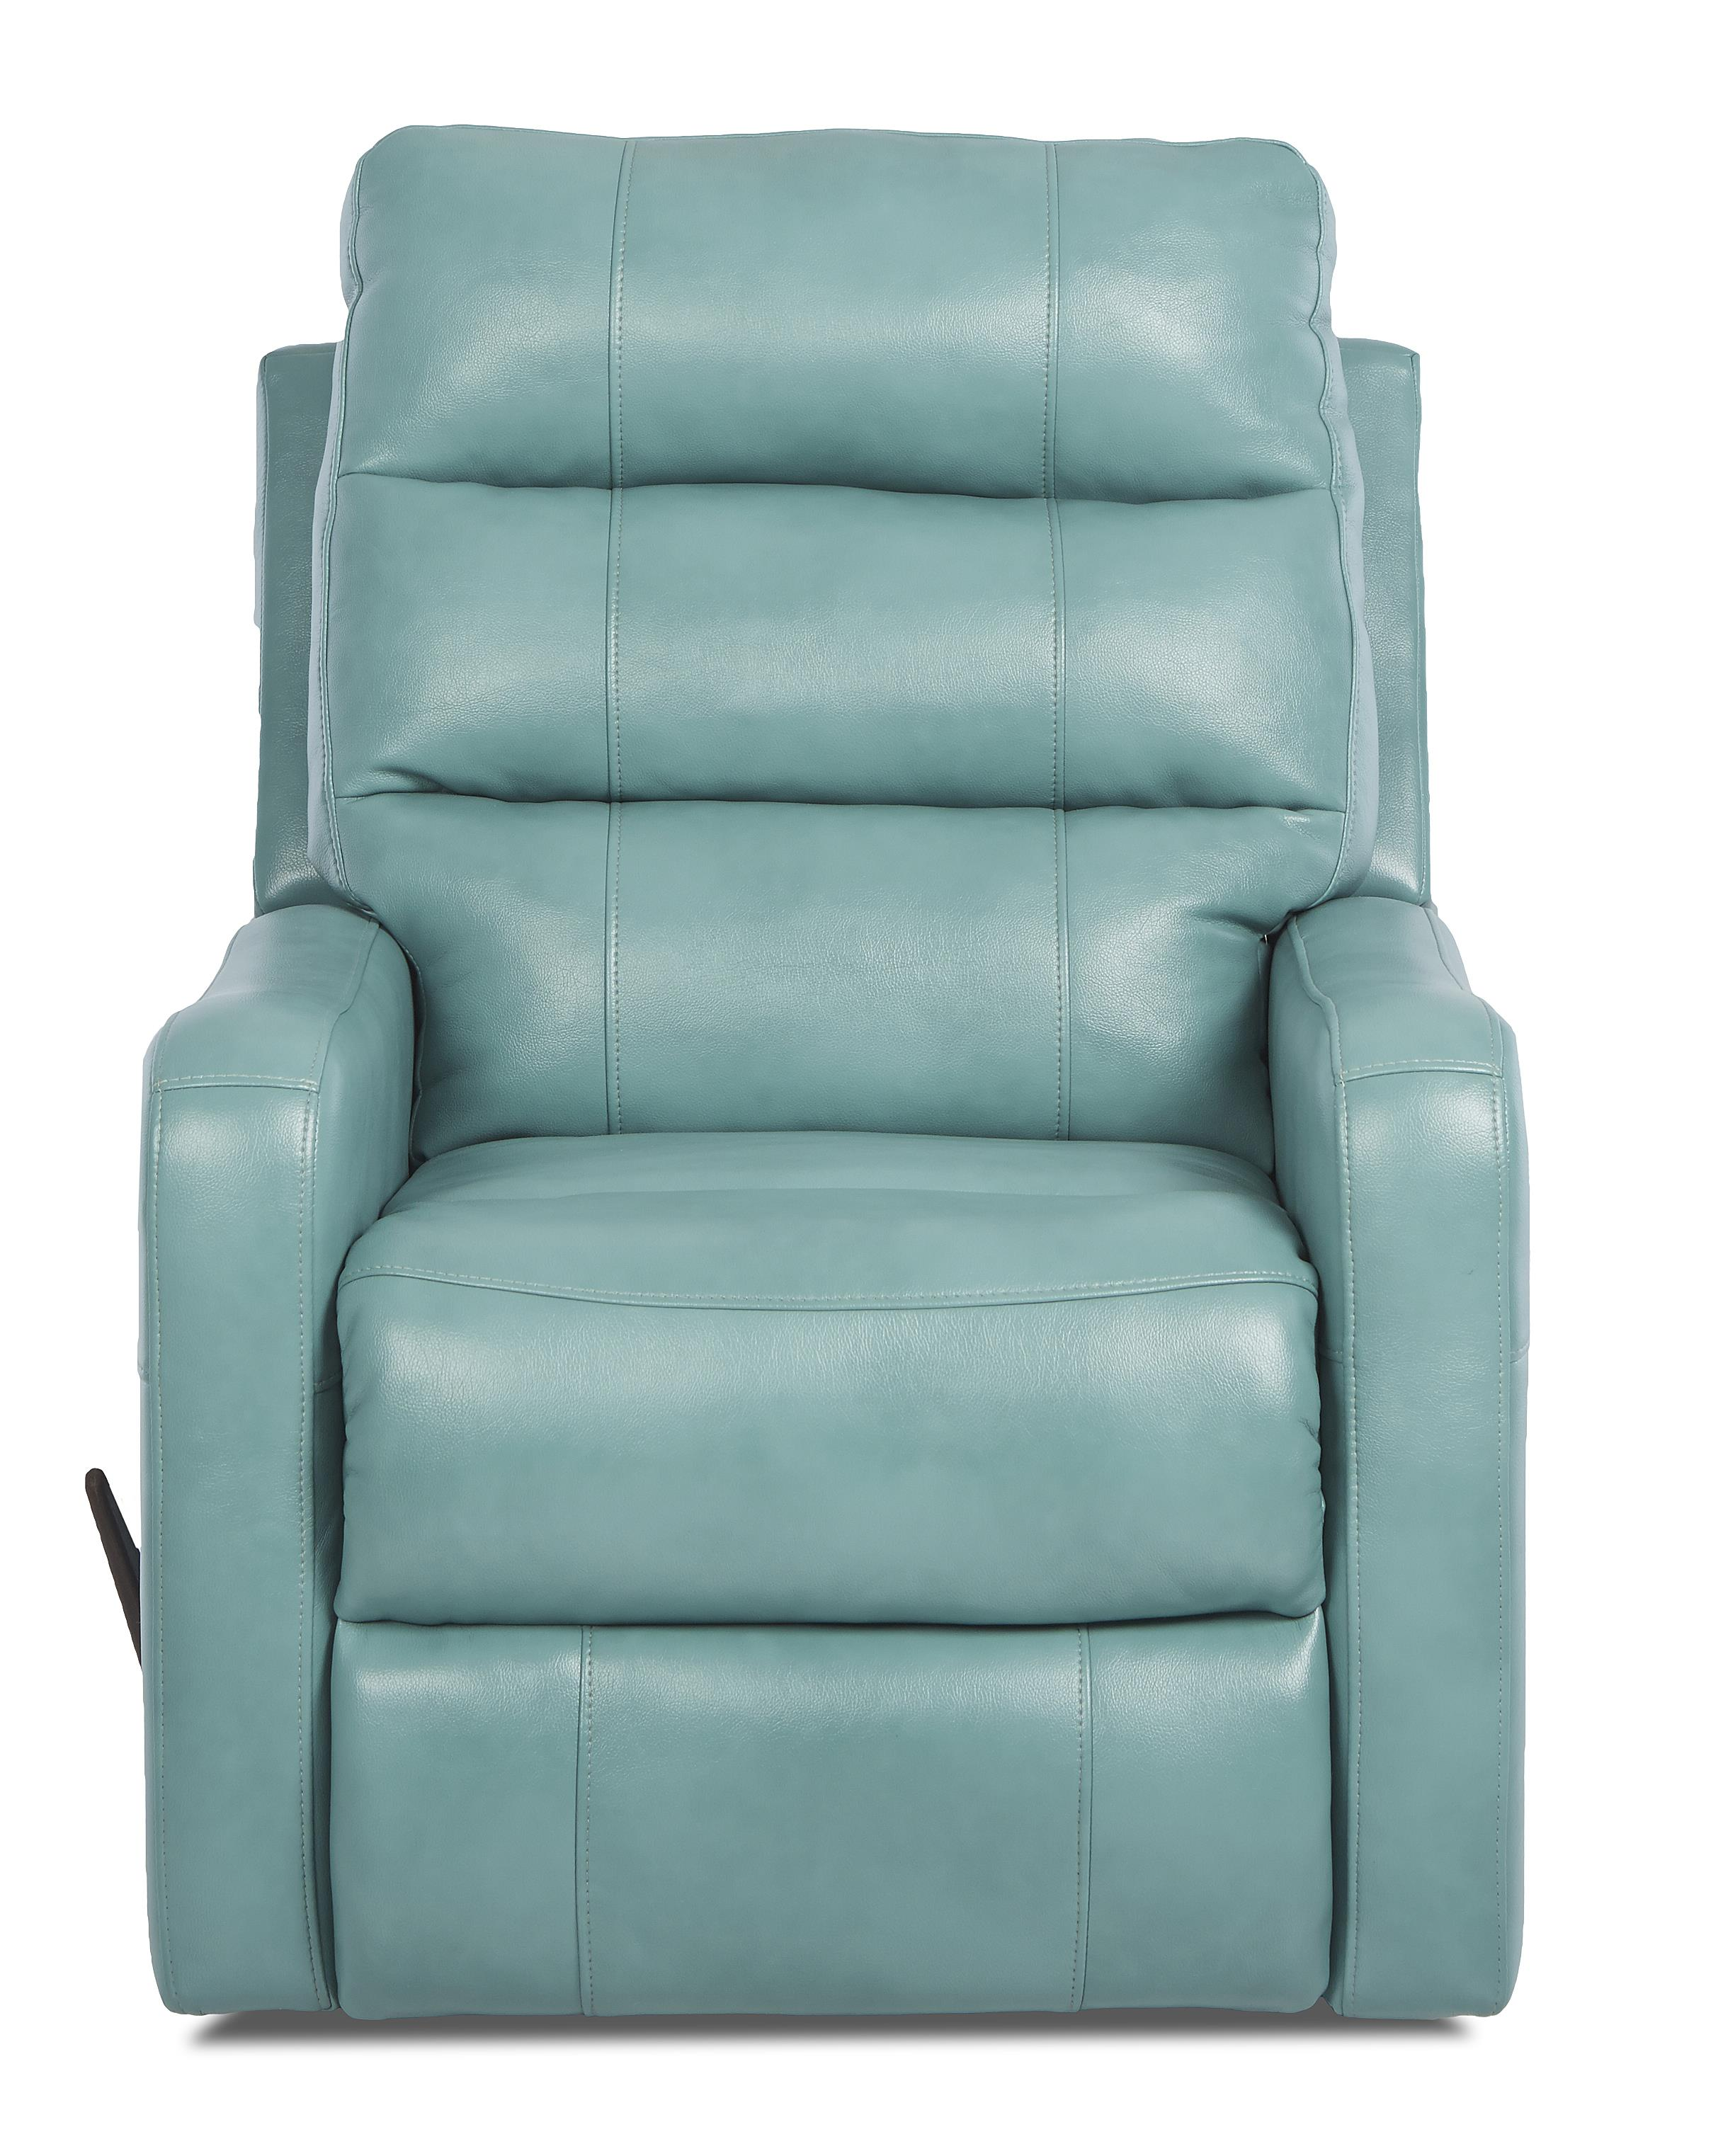 Striker Contemporary Swivel Rocking Reclining Chair By